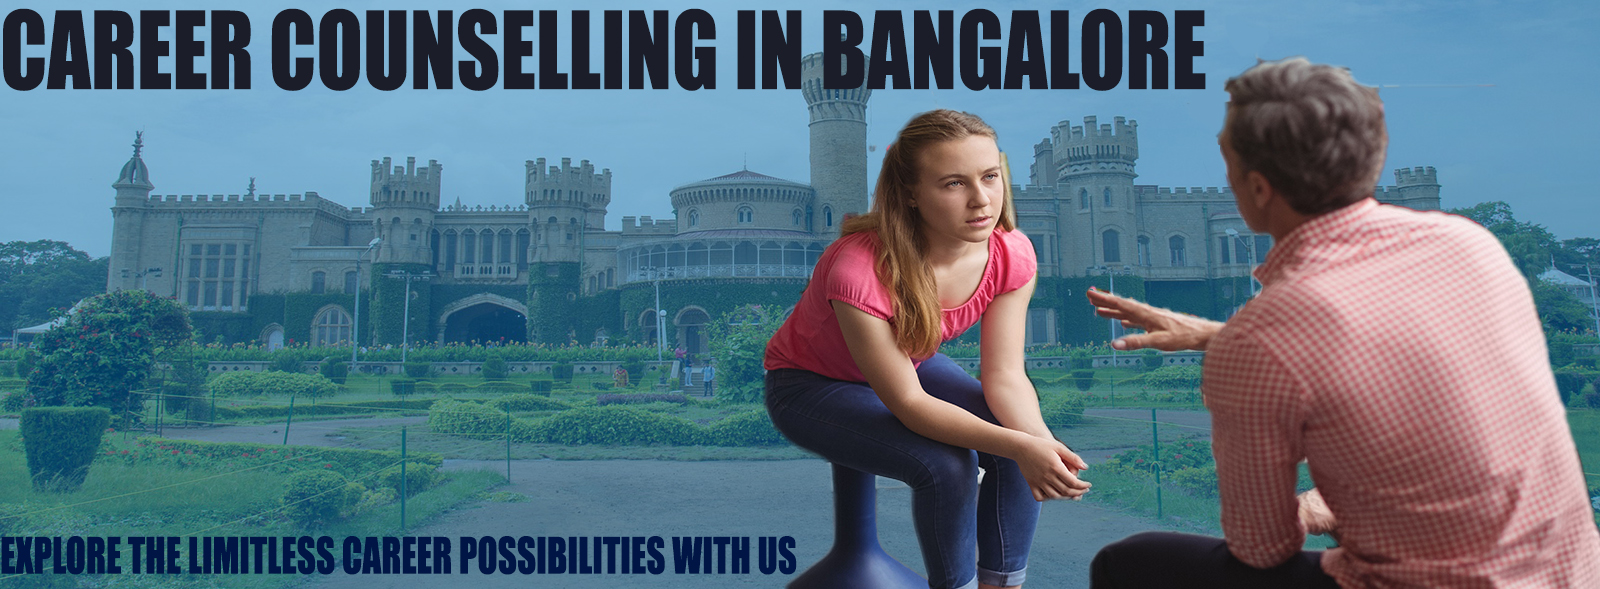 career counselling in bangalore